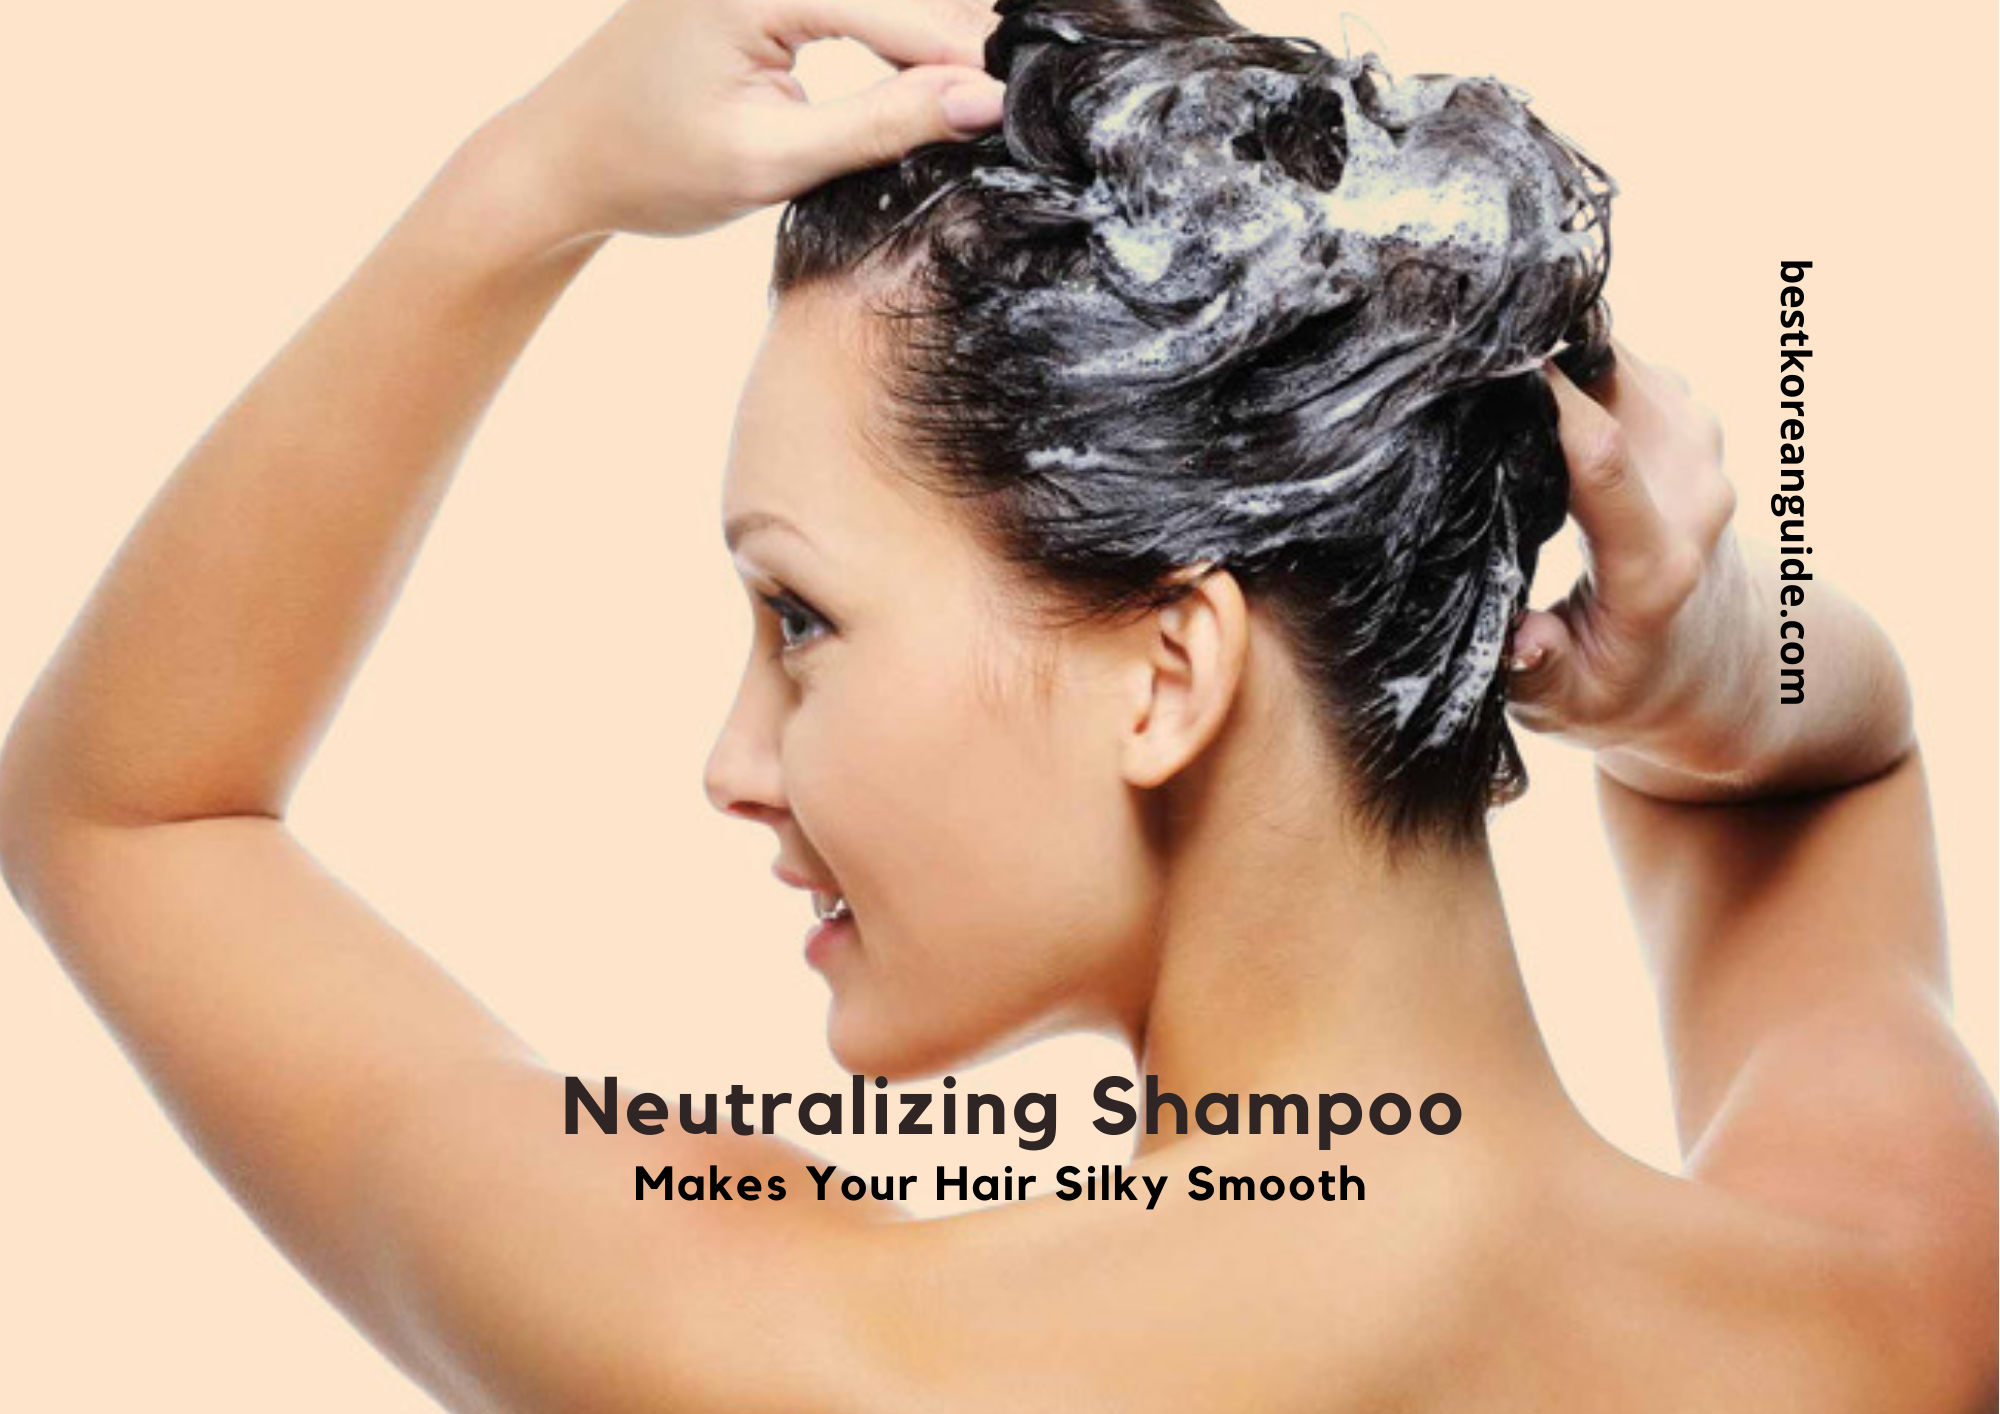 What is Neutralizing Shampoo